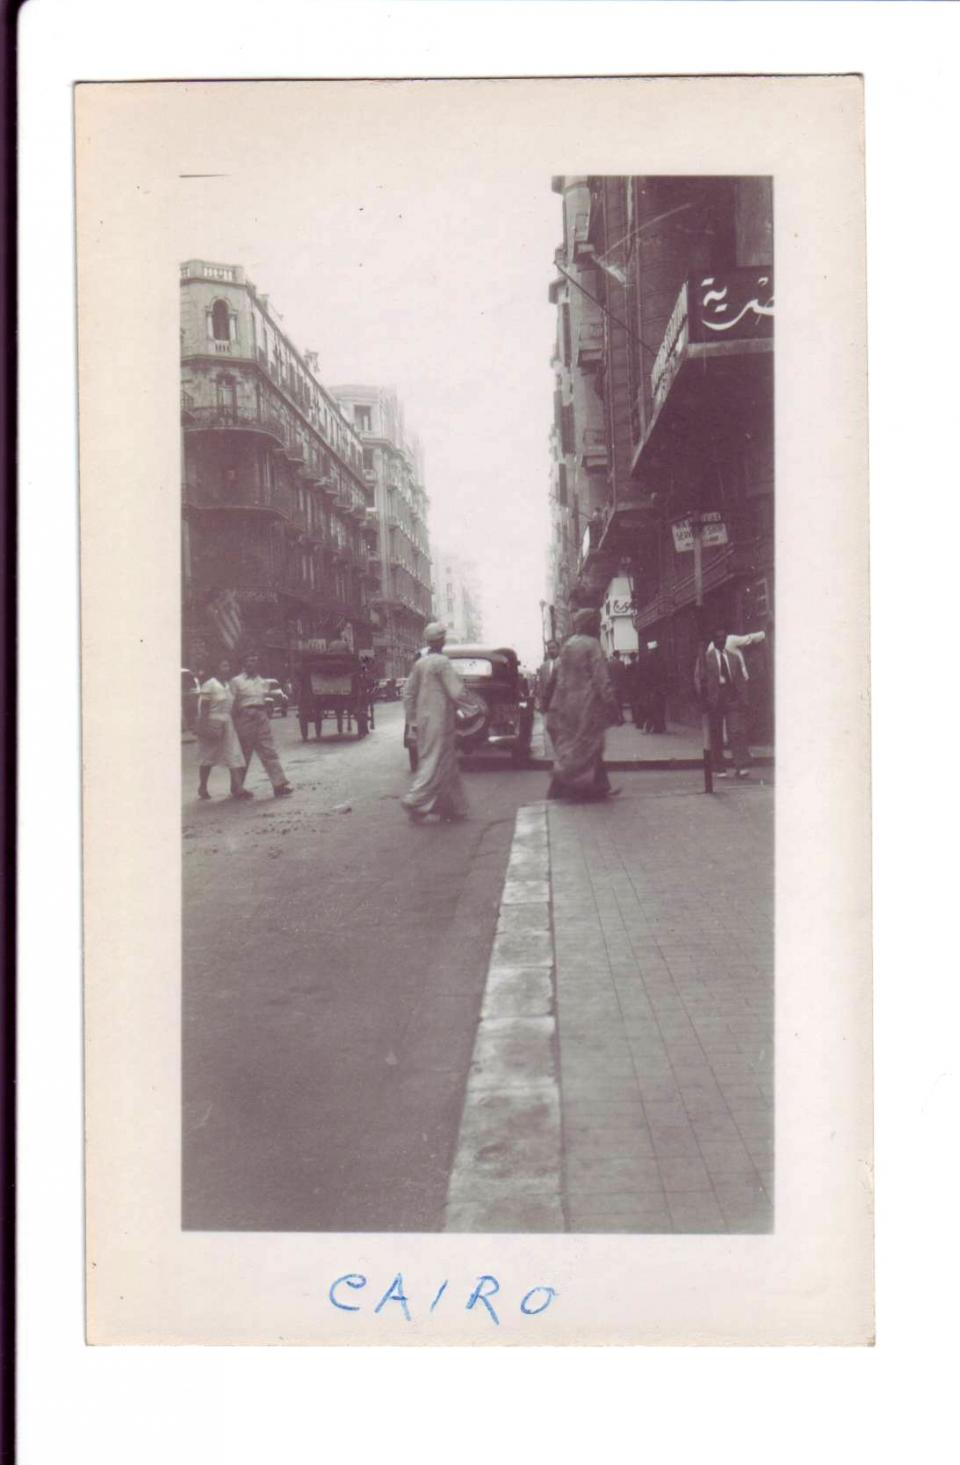 Photo #3 View of a Street In Cairo